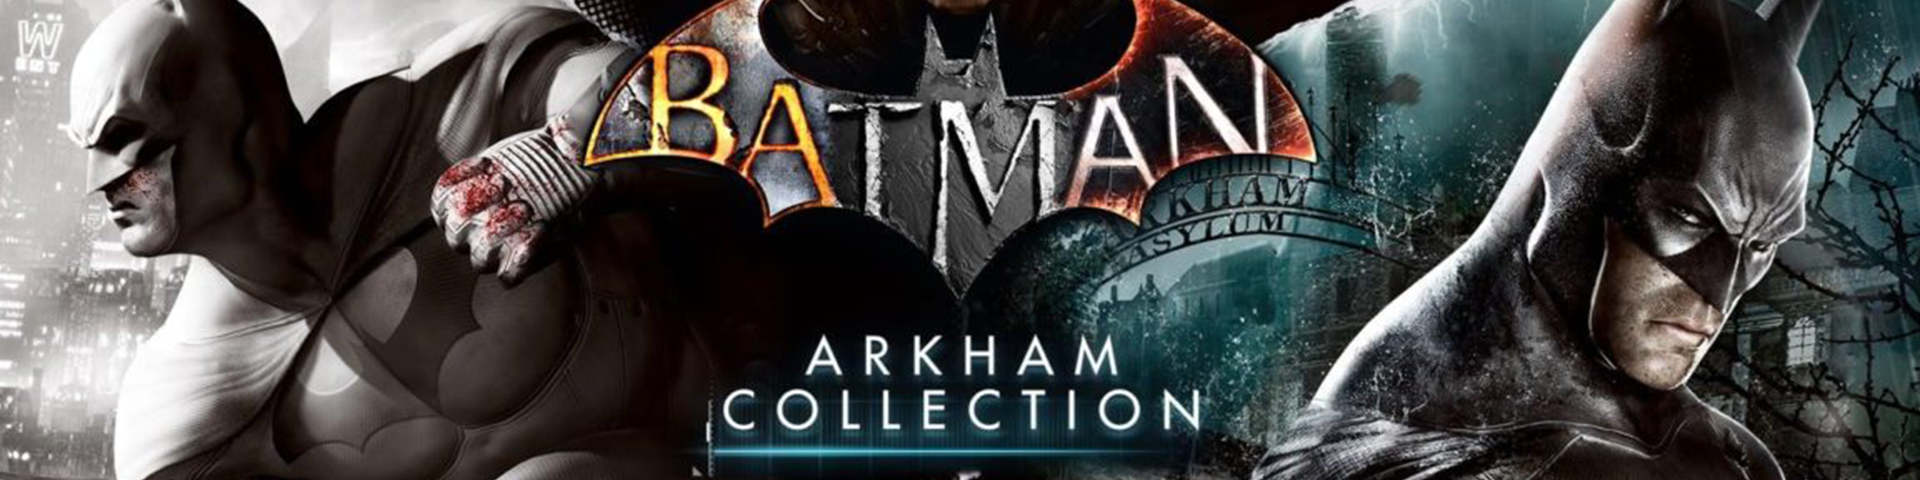 Arkham Collection Header.png